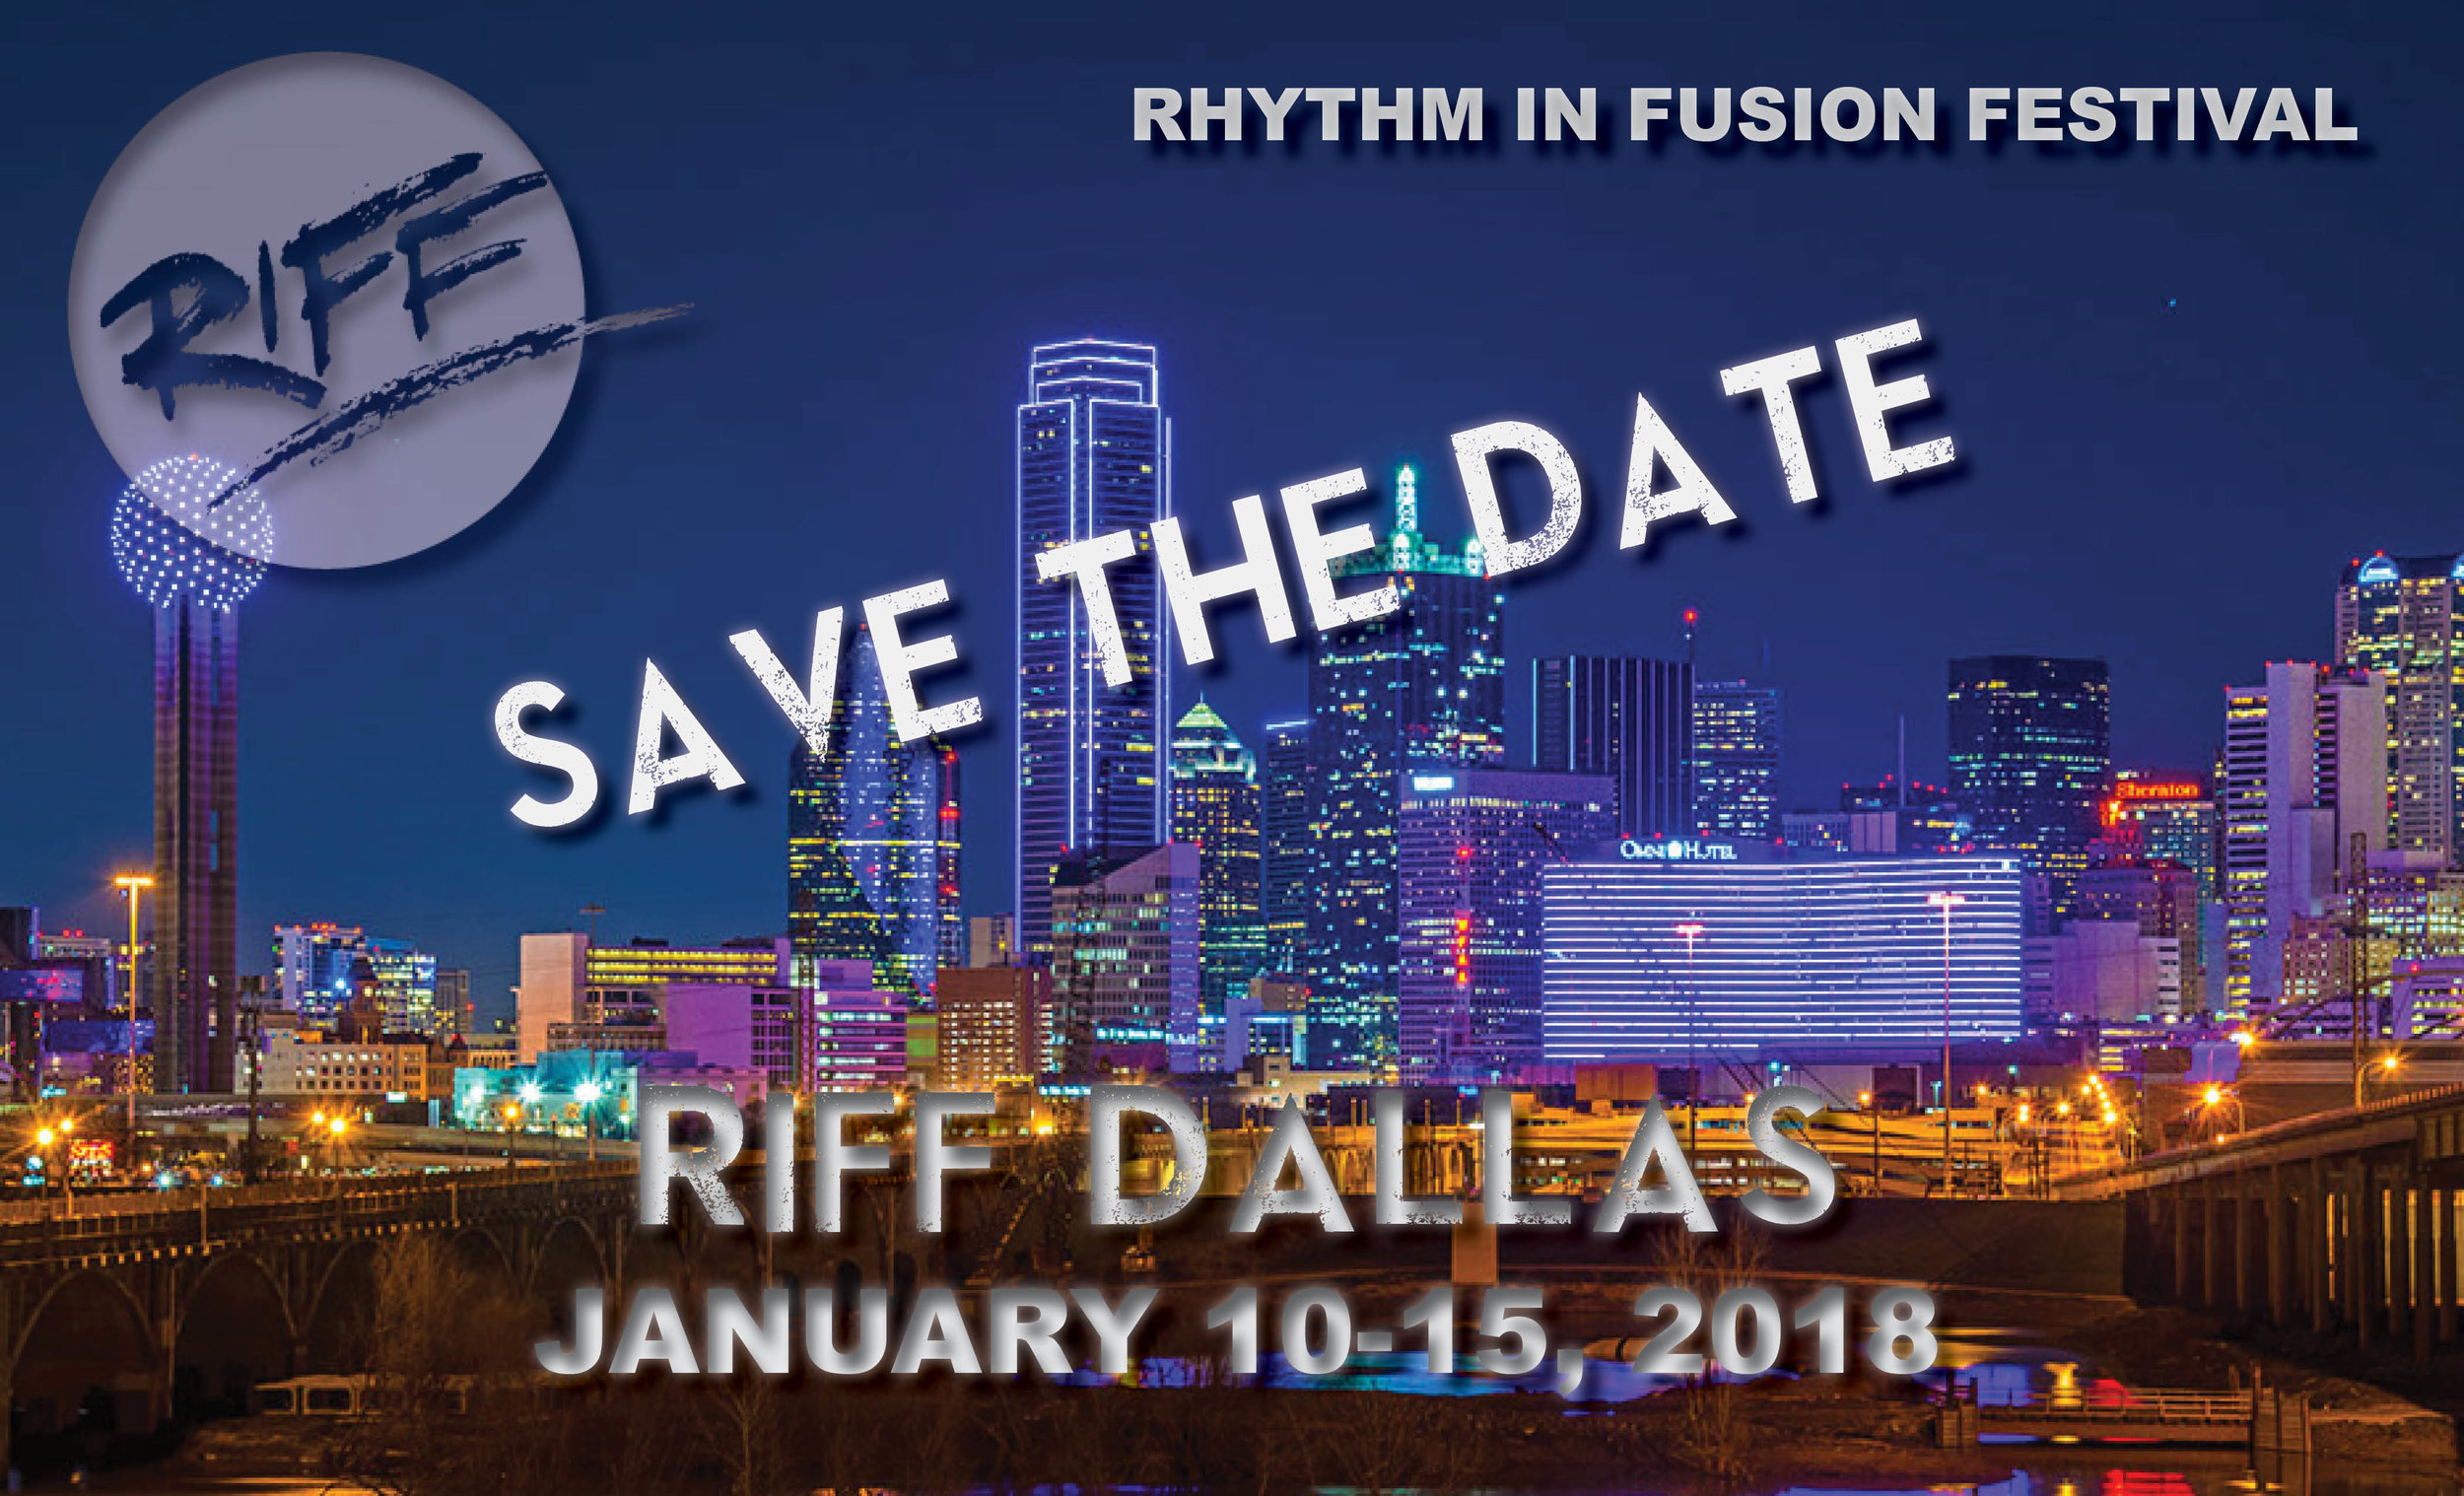 Registration August 1st! - RIFF Dallas 2018Complete info now available! Registration begins August 1st.NEWJanuary 10th & 11th Kick Off Workshop with SAVION!January 12th-15th RIFF Dallas Weekend